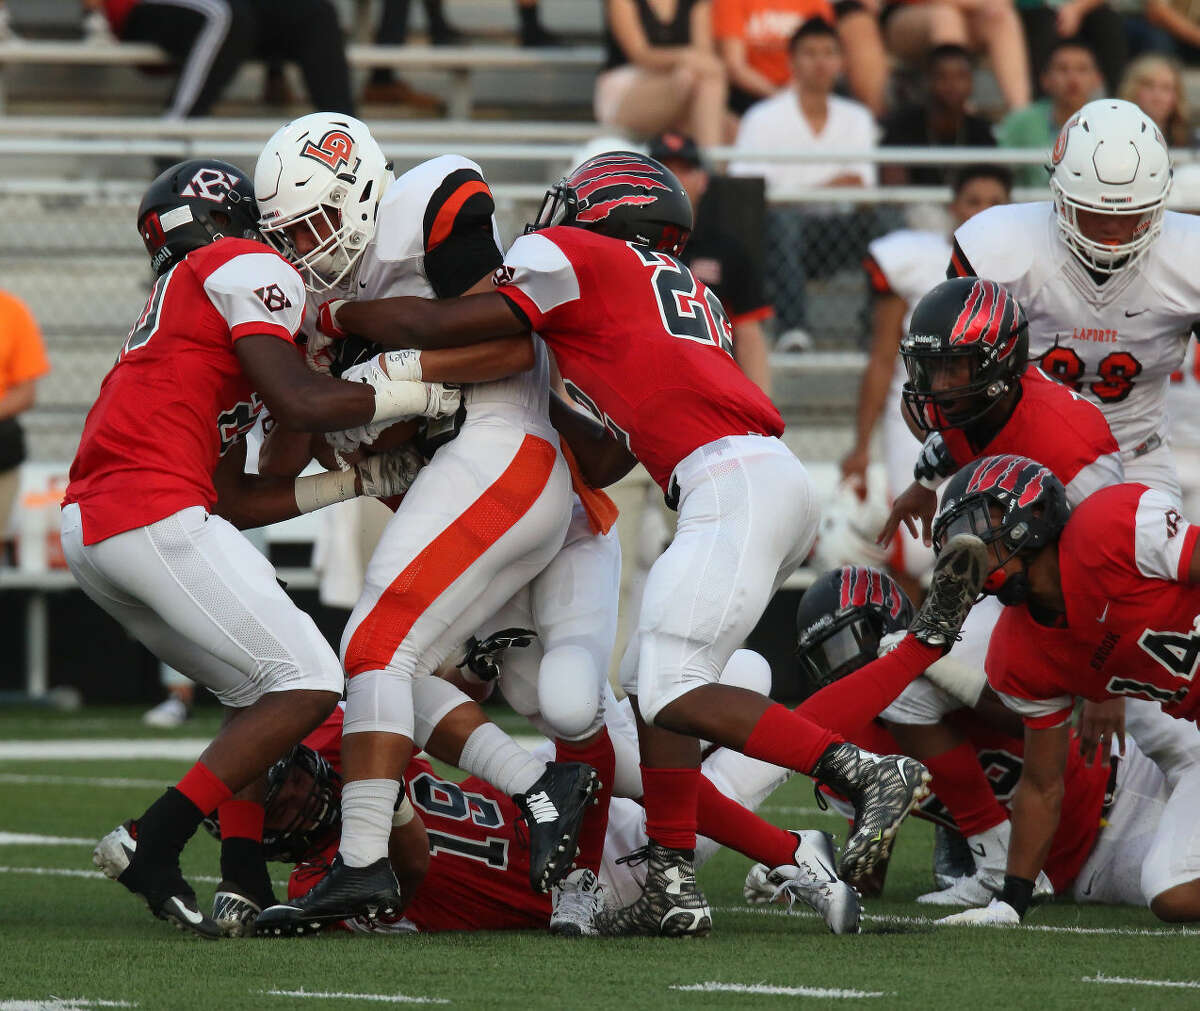 Clear Brook's Tywon Mackey (20) and Khalil Guinn (22) surround the La Porte ball carrier.